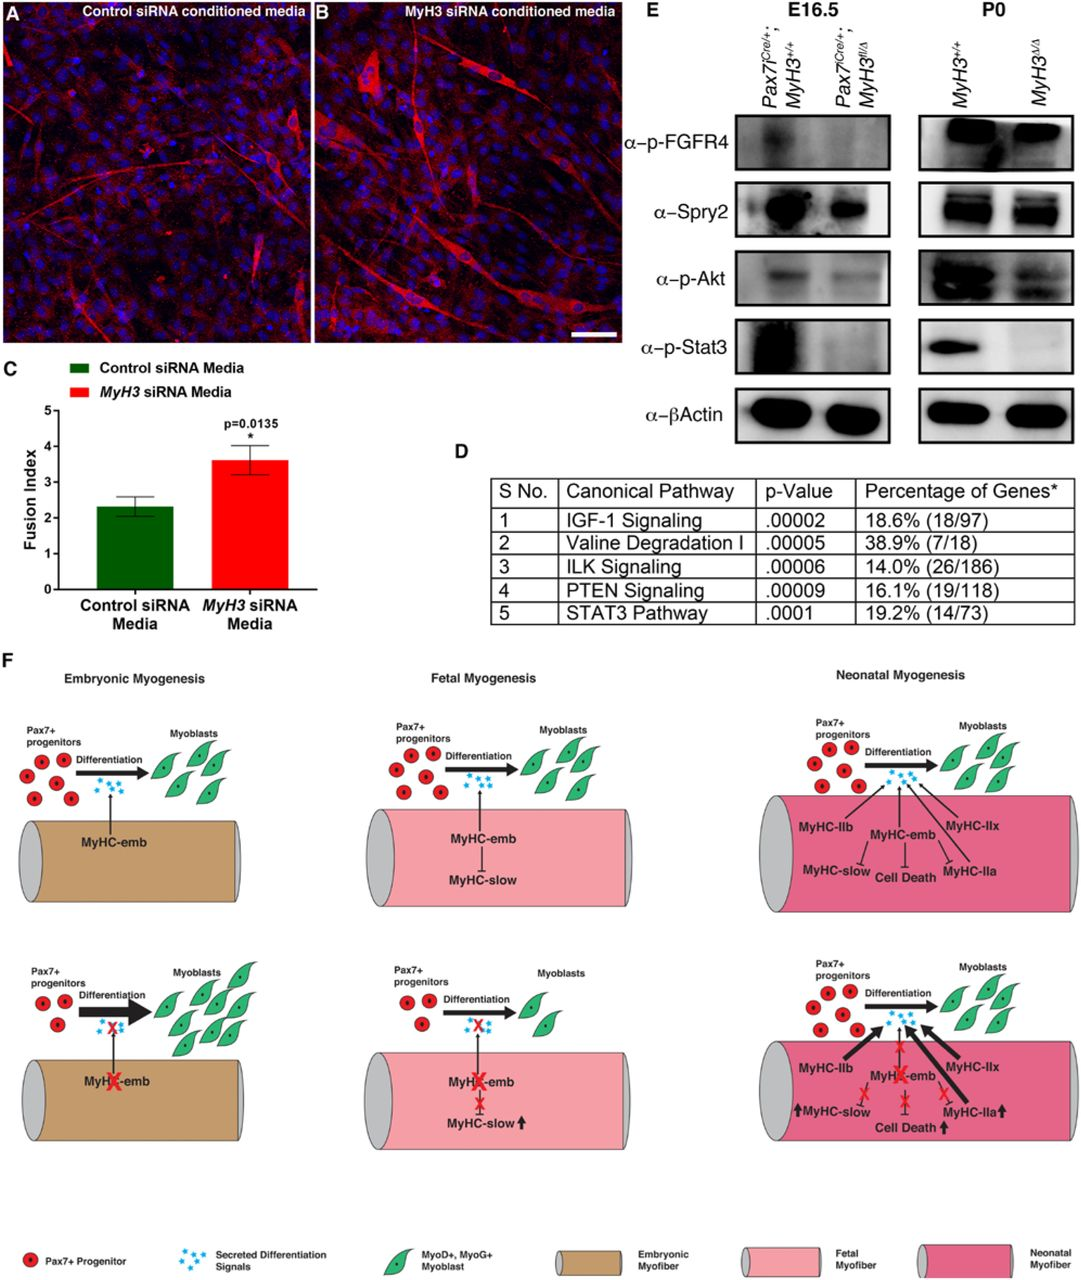 MyHC-embryonic regulates myogenic differentiation non-cell autonomously. C2CI2 cells were allowed to differentiate for 4 days in conditioned media from control siRNA treated cells (A), as compared to MyH3 siRNA treated cells (B), and labeled by immunofluorescence for MyHC-slow and fast MyHCs to mark the myofibers (red) and nuclei are labeled by DAPI (blue). The cells grown in conditioned media from MyH3 siRNA treated cells promotes differentiation, with larger myofibers with more nuclei visible (B). The fusion index was calculated and a significant increase in fusion index was observed in the cells differentiated in MyH3 siRNA treated conditioned media as compared to cells differentiated in conditioned media from control siRNA treated cells (C). The RNA-Seq data from P0 MyH3 +/+ and MyH3 Δ/Δ samples for quadriceps, tibialis anterior, gastrocnemius, and diaphragm muscles was subjected to pathway analysis to identify the major pathways altered upon loss of MyHC-emb, where the top 5 pathways that were significantly altered had 4 pathways that are related to growth factor related MAP kinase signaling (D). The p-value and the number of genes affected as compared to total number of genes in the respective pathway are represented in the table (D). In order to validate pathway activation during fetal myogenesis where MyHC-emb plays significant roles, as compared to P0 stage, western blots were performed on E16.5 Pax7 iCre/+ , MyH3Δ/fl3-7 compared to Pax7 iCre/+ , MyH3+/+ animals, and MyH3 Δ/Δ and MyH3 +/+ animals at P0 for p-FGFR4, Spry2, p-Akt, and p-Stat3 (E). p-FGFR4 levels are drastically downregulated at E16.5 upon loss of MyHC-emb, while it is downregulated upon loss of MyHC-emb at P0 (E). Spry2 levels are downregulated upon loss of MyHC-emb at E16.5, but is unchanged at P0 (E). p-Akt and p-Stat3 levels are downregulated upon loss of MyHC-emb at both E16.5 and P0 stages, with beta-actin used as loading control (E). MyHC-emb thus plays roles in myogenesis during embryo